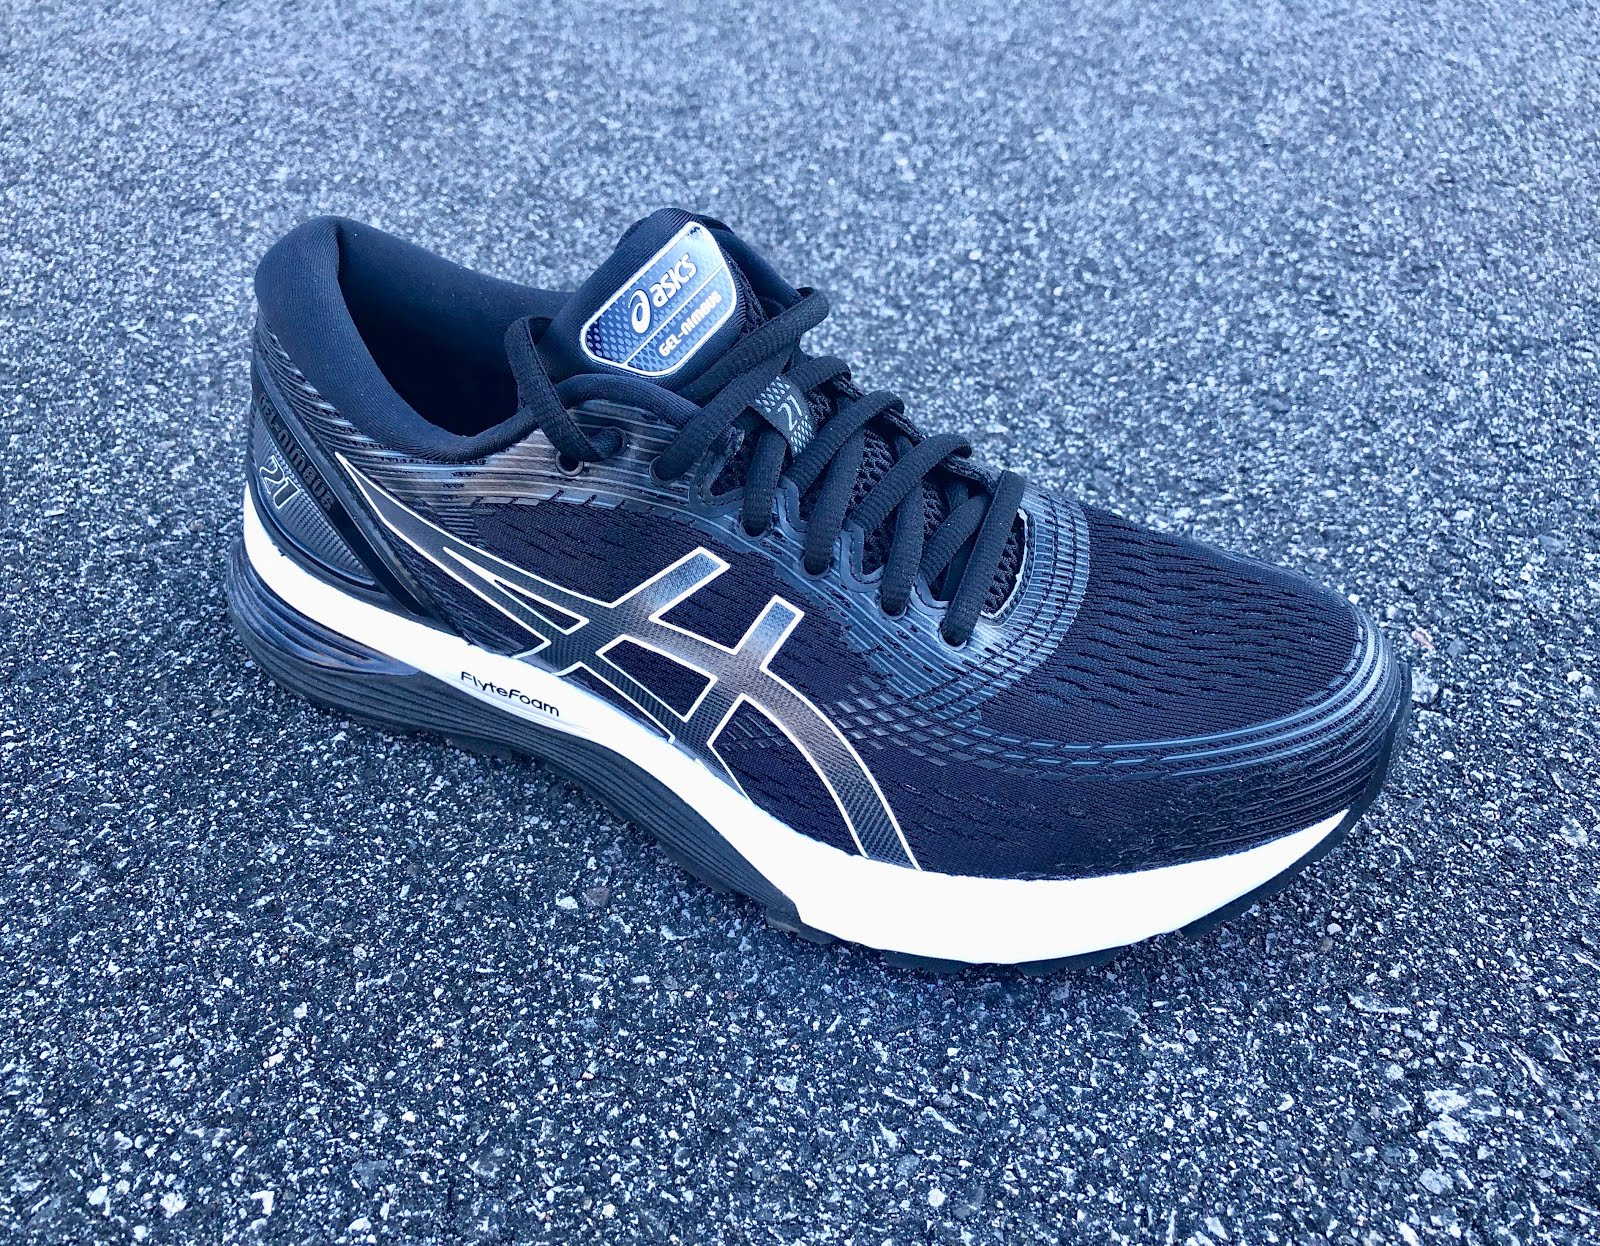 72d66338 Road Trail Run: ASICS GEL Nimbus 21 Review: The N Formula Deftly Tuned